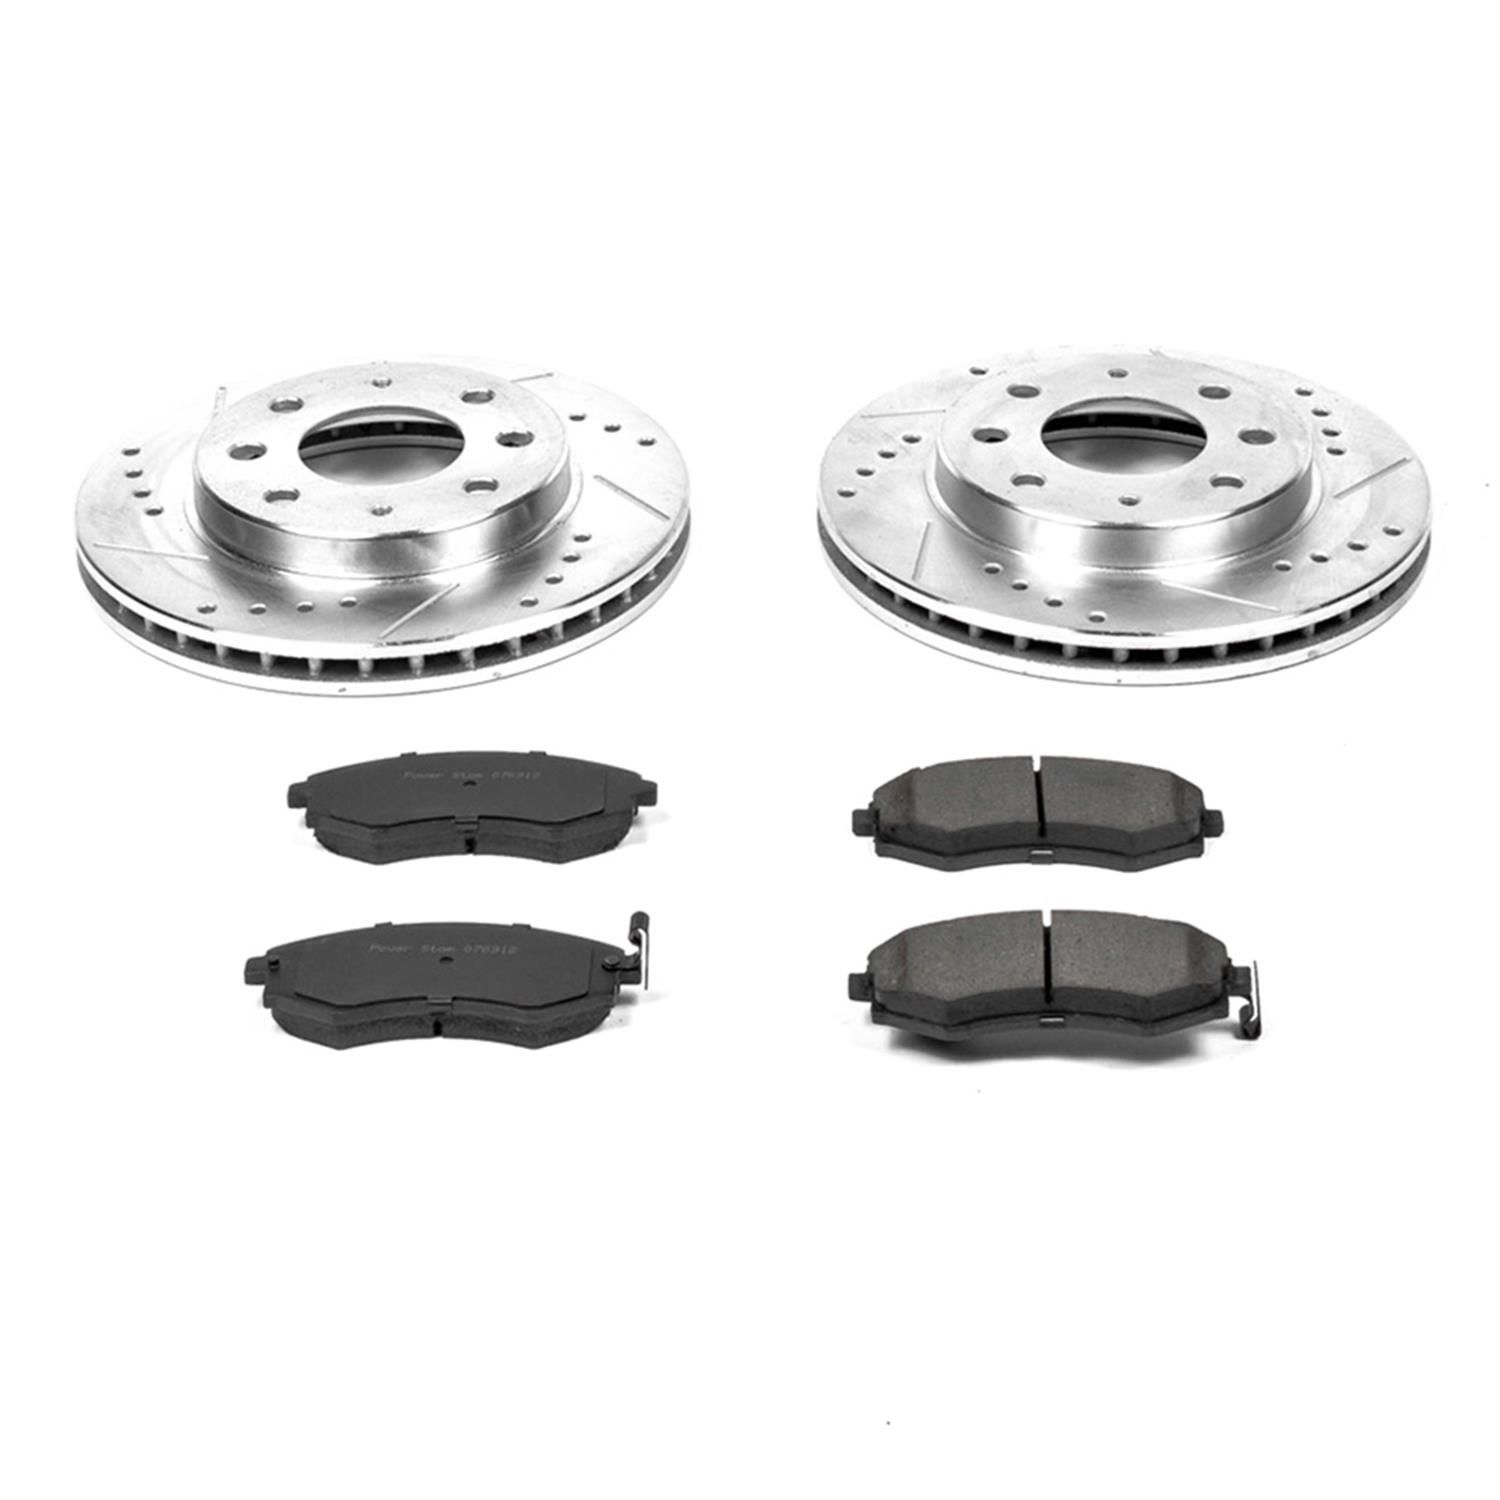 Stoptech 937.45015 Street Axle Pack Slotted Front